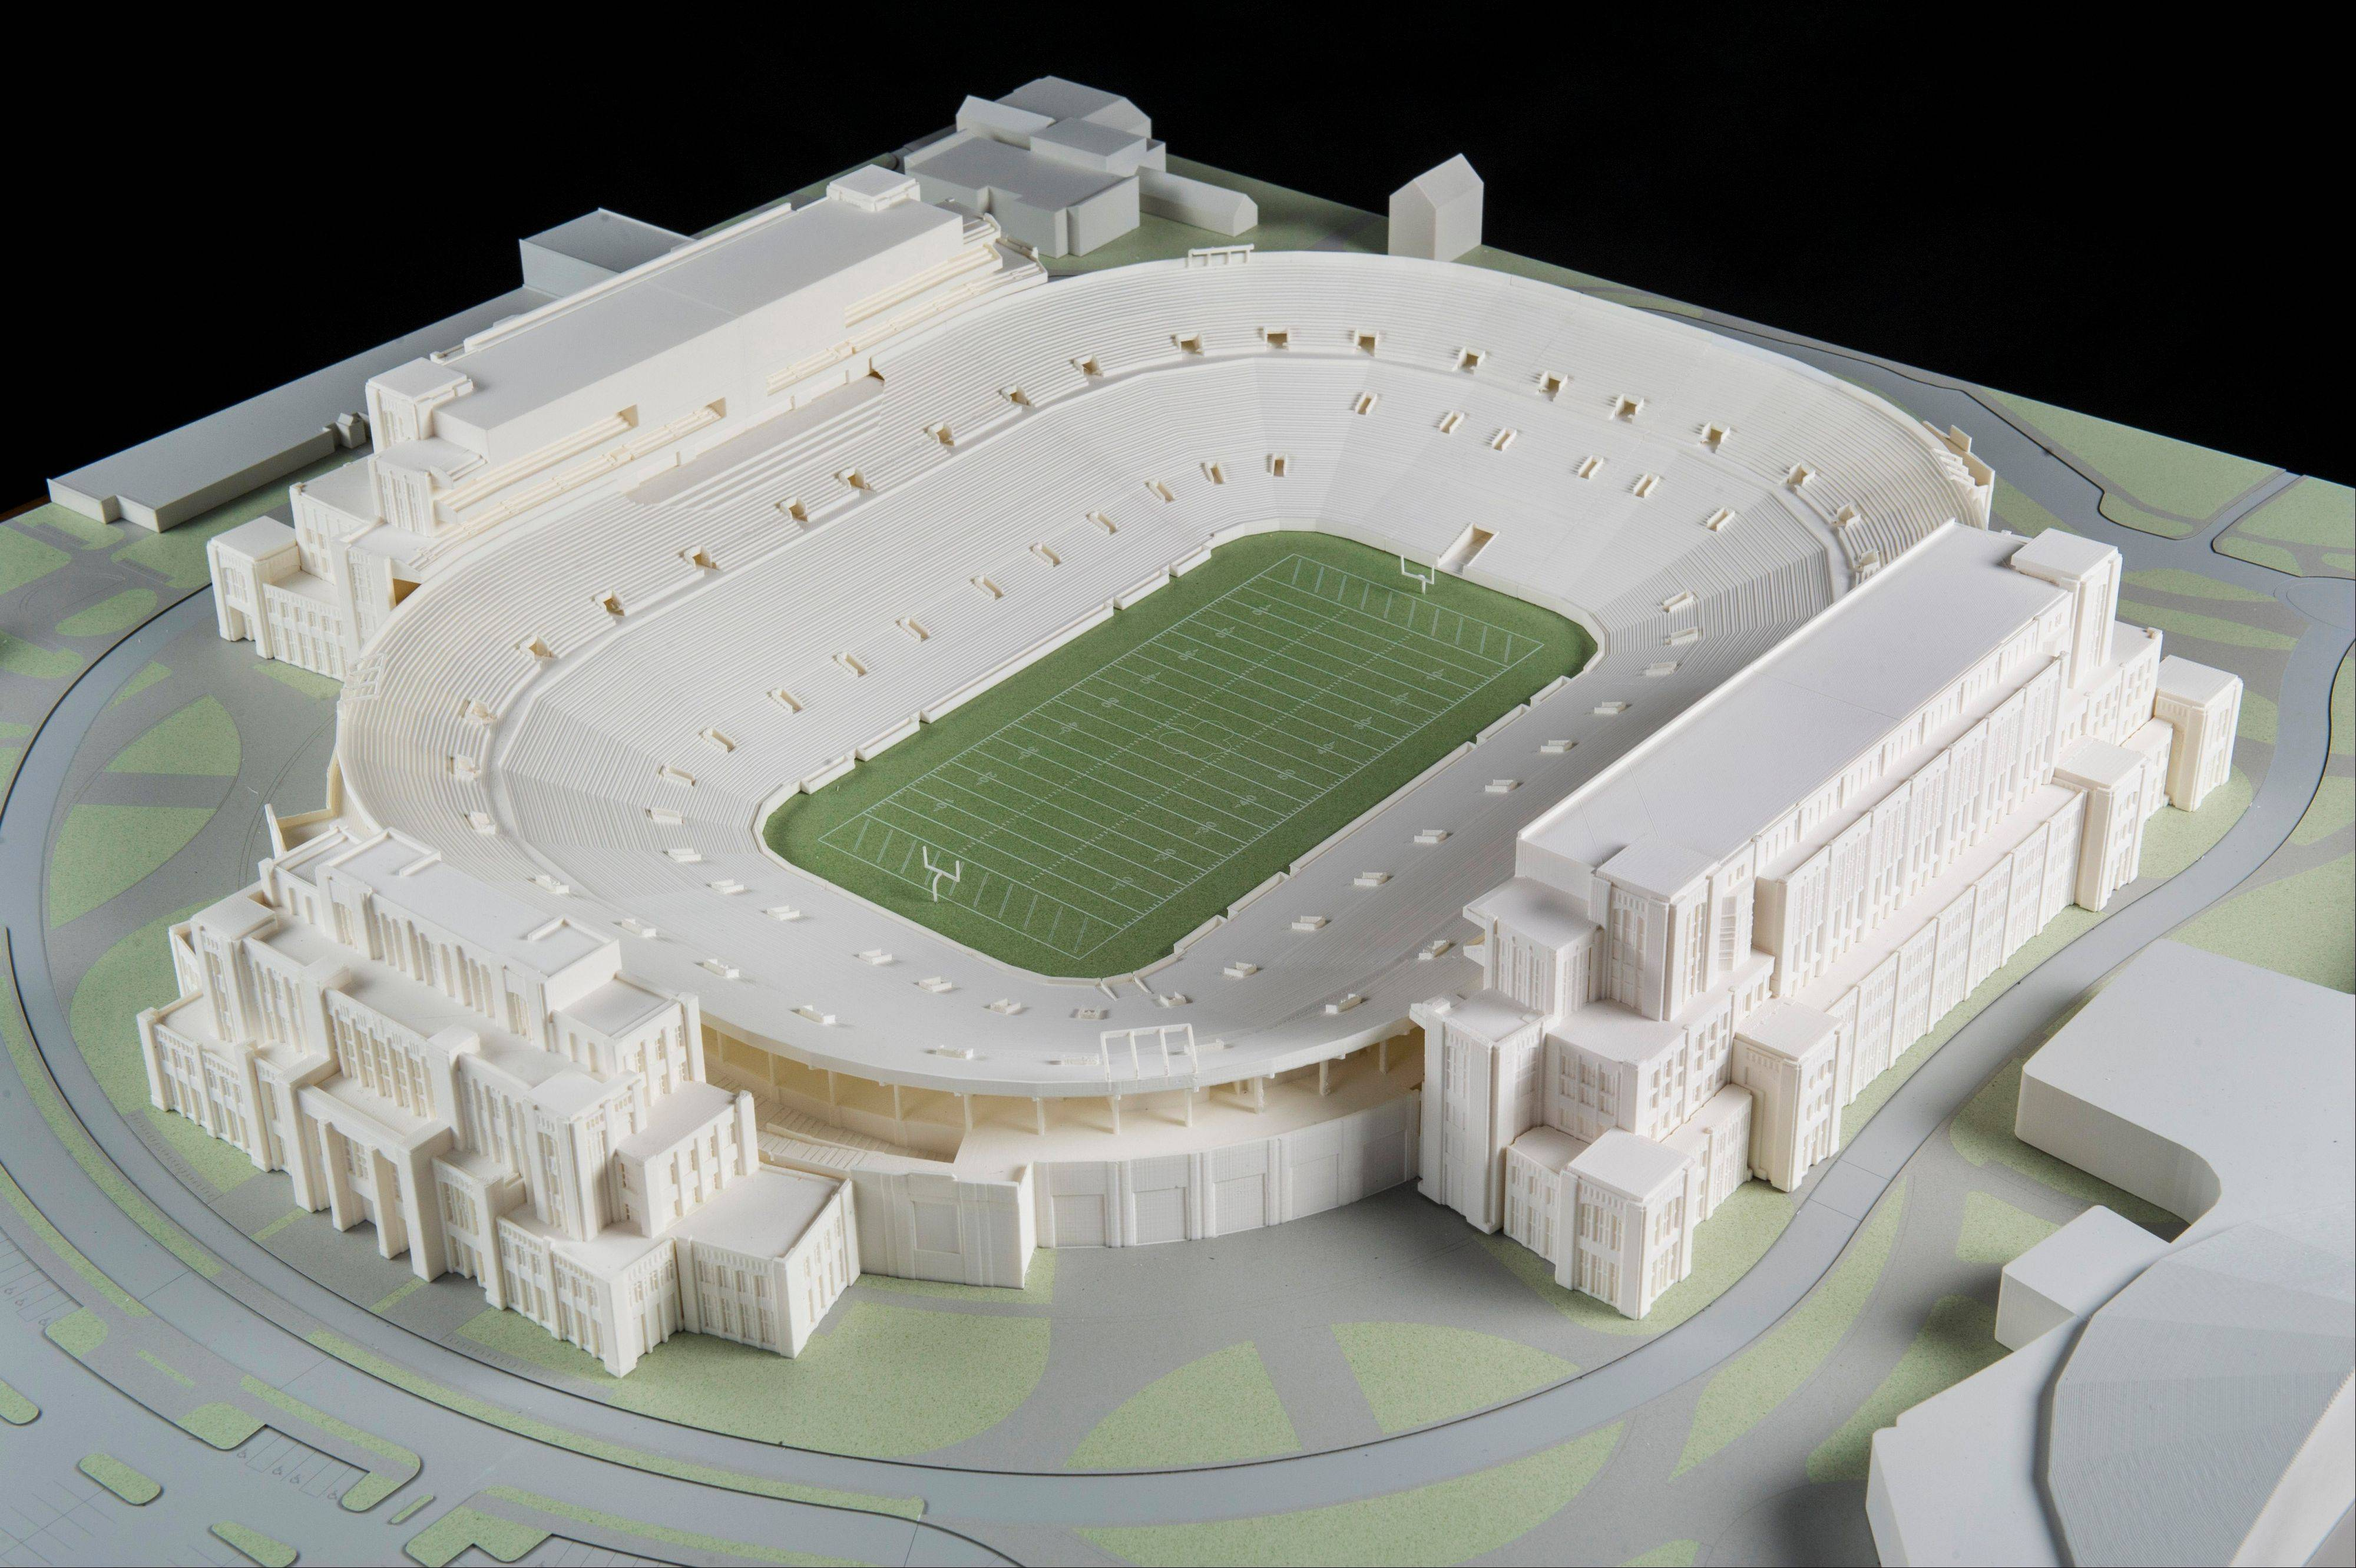 In this Jan. 17, 2014 photo is a model of The University of Notre Dame's new football stadium. Notre Dame announced plans Wednesday, Jan. 29, 2014 to expand the school�s 84-year-old football stadium, adding up to 4,000 premium seats and spending about $400 million to add buildings on three sides of the �House that Rockne Built.� (AP Photo/The University of Notre Dame, Barbara Johnston)